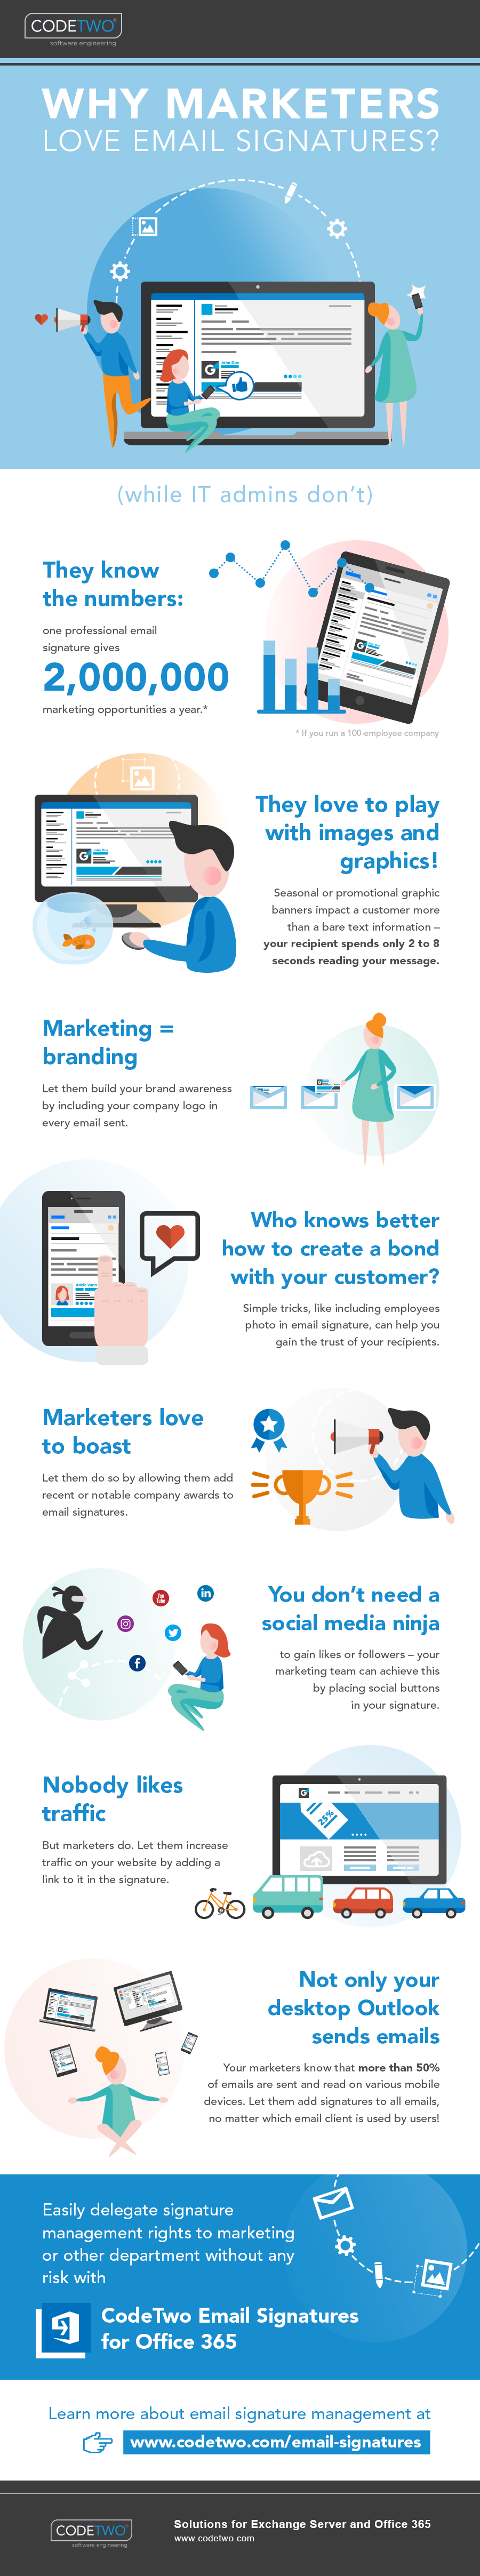 Why marketers love email signatures | Infographic